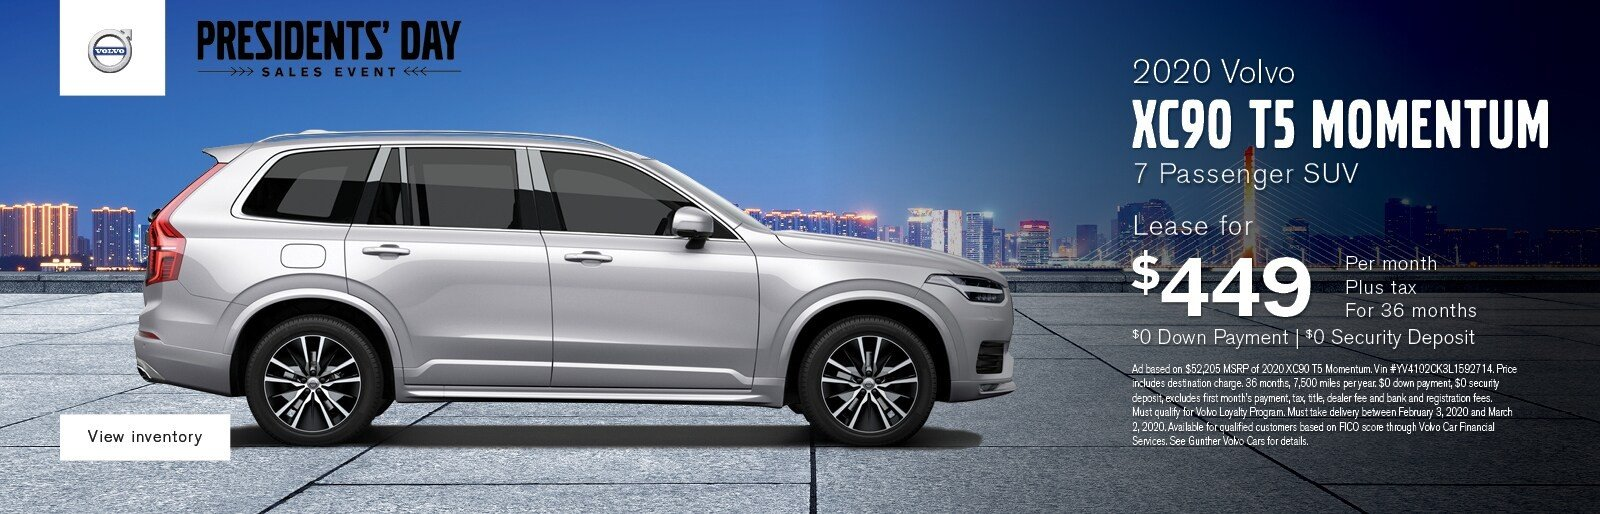 xc90 special